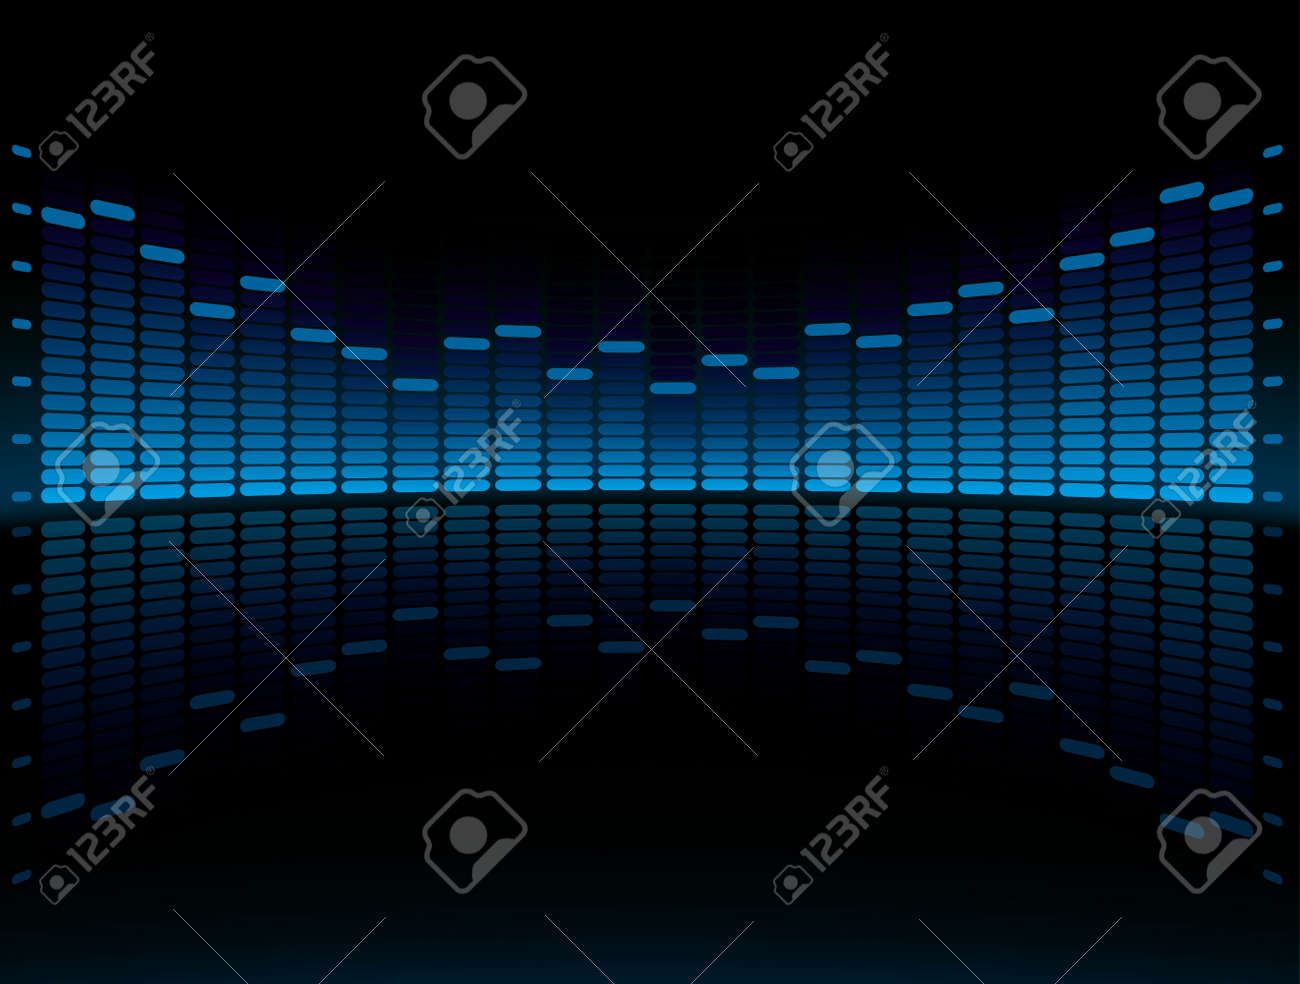 Blue Graphic Equalizer Display vector illustration with copy